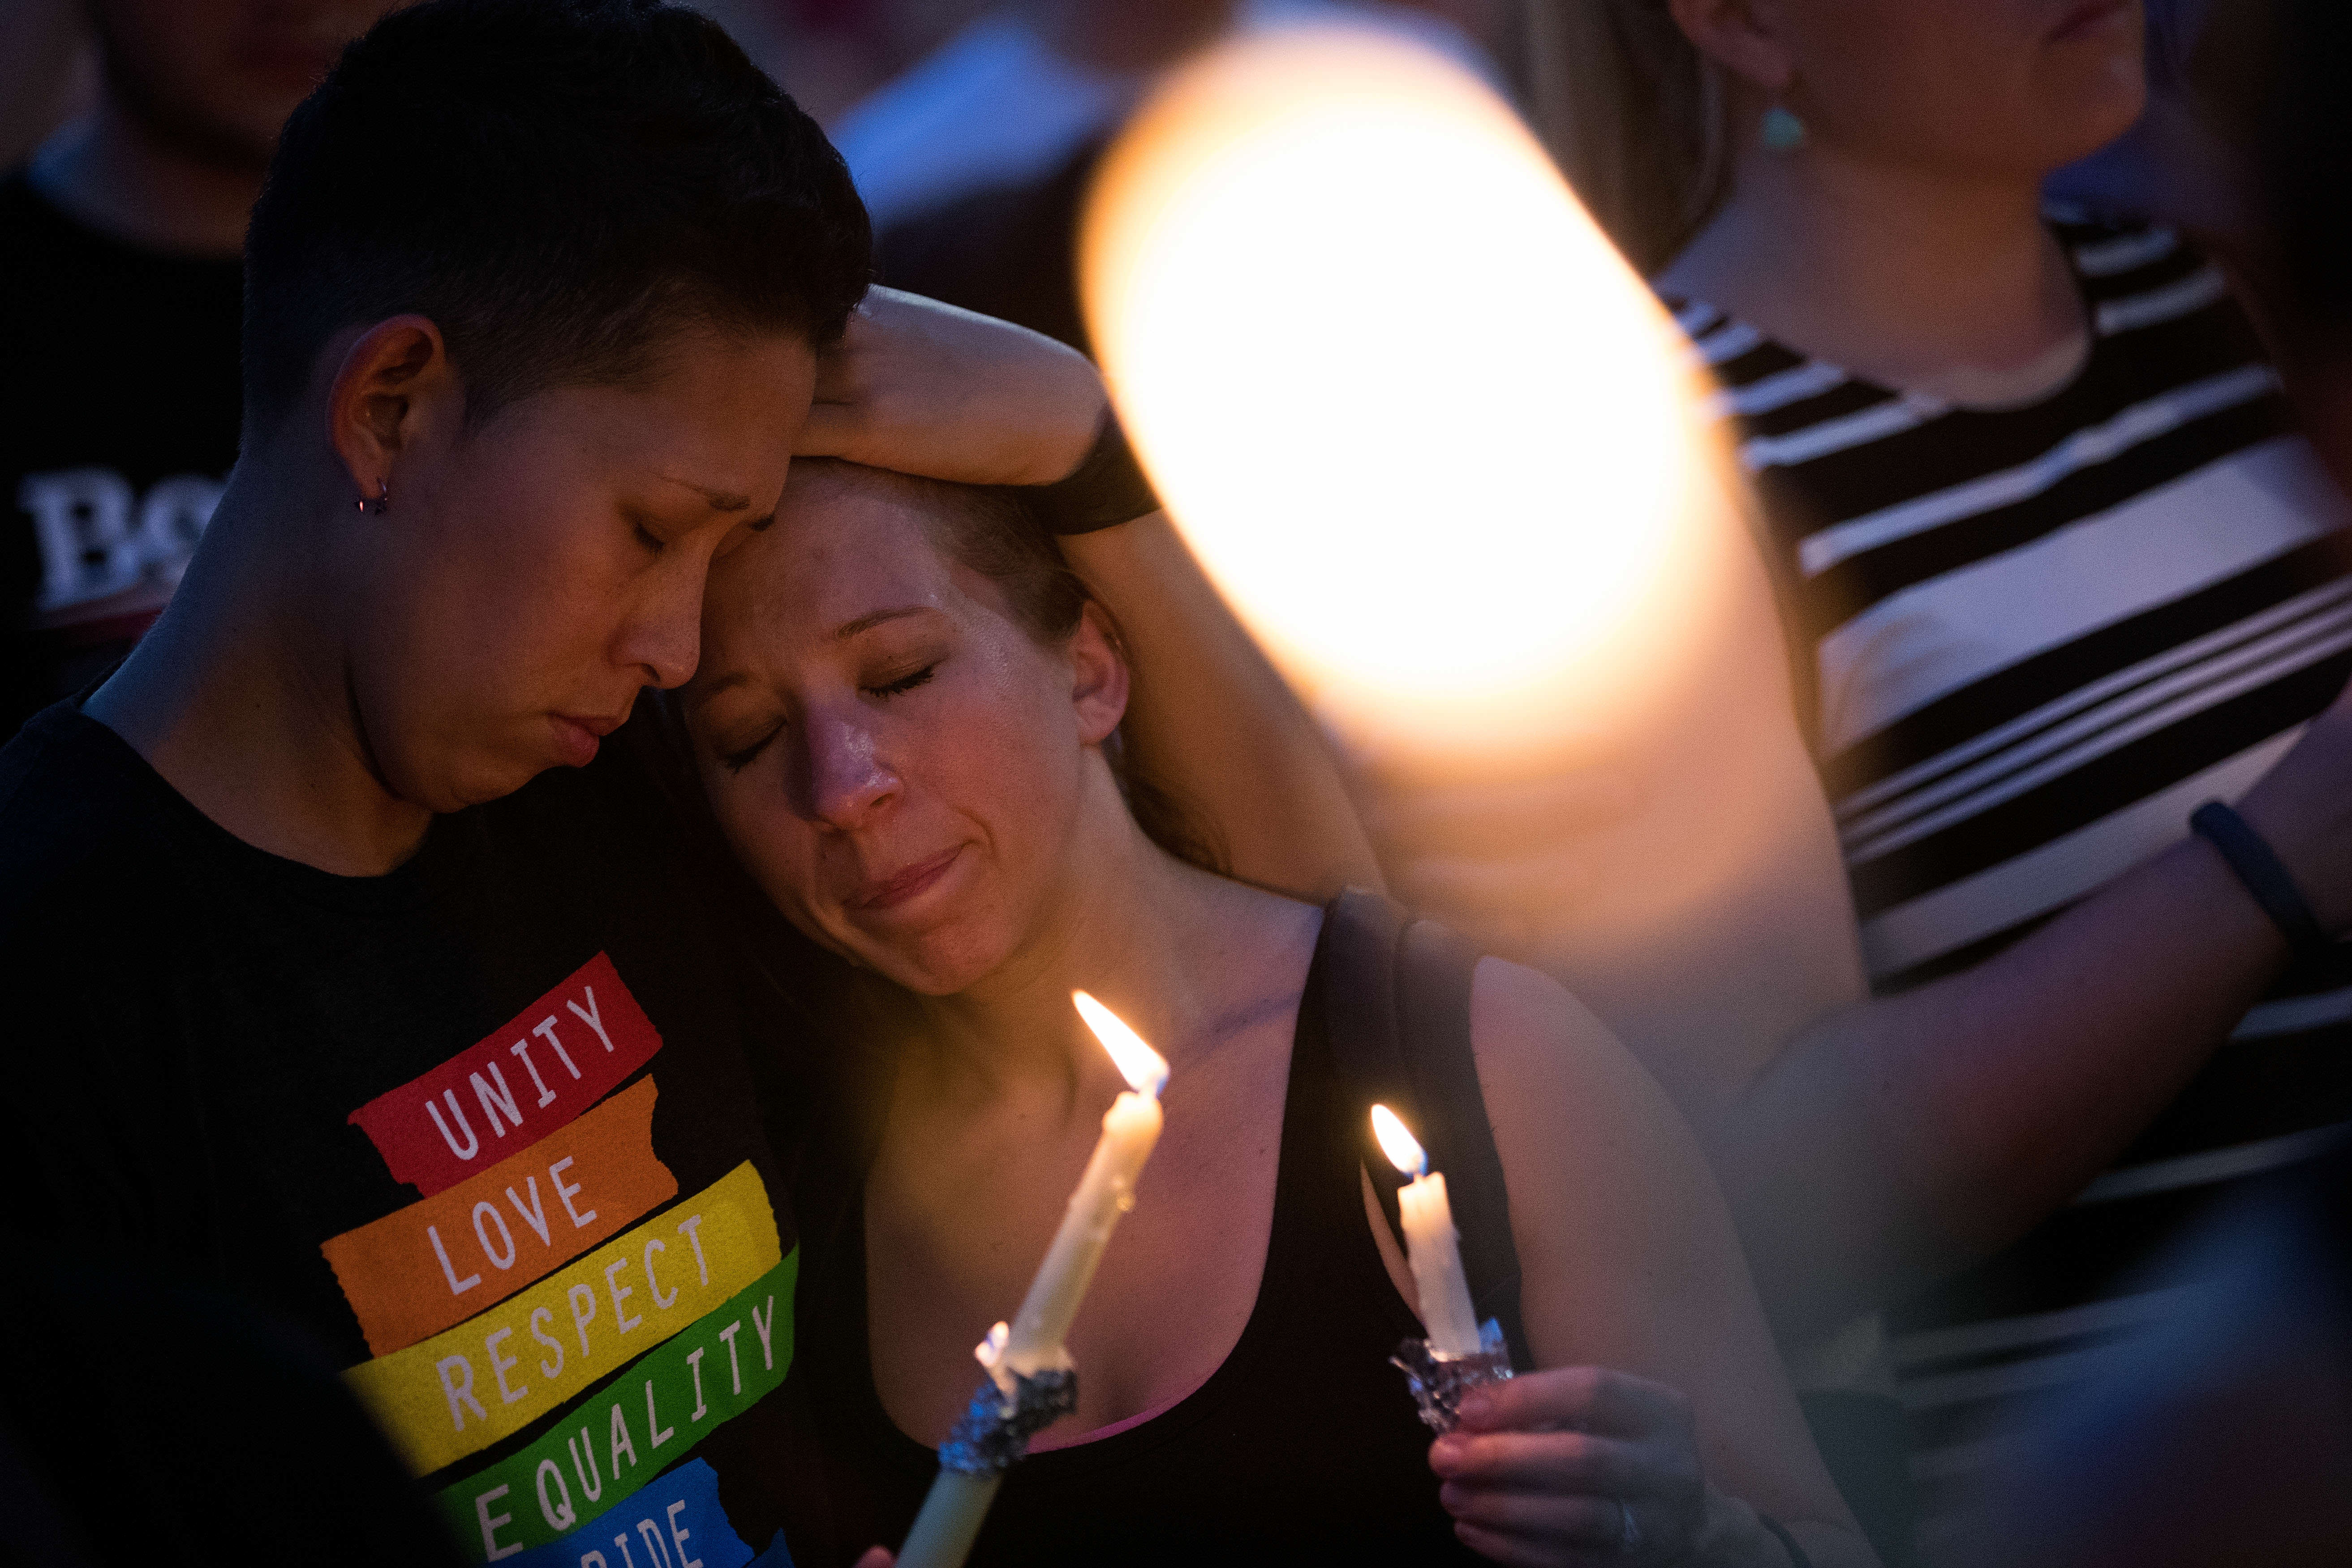 GettyImages 540006724 1 More Details About The Orlando Shooter Have Been Revealed